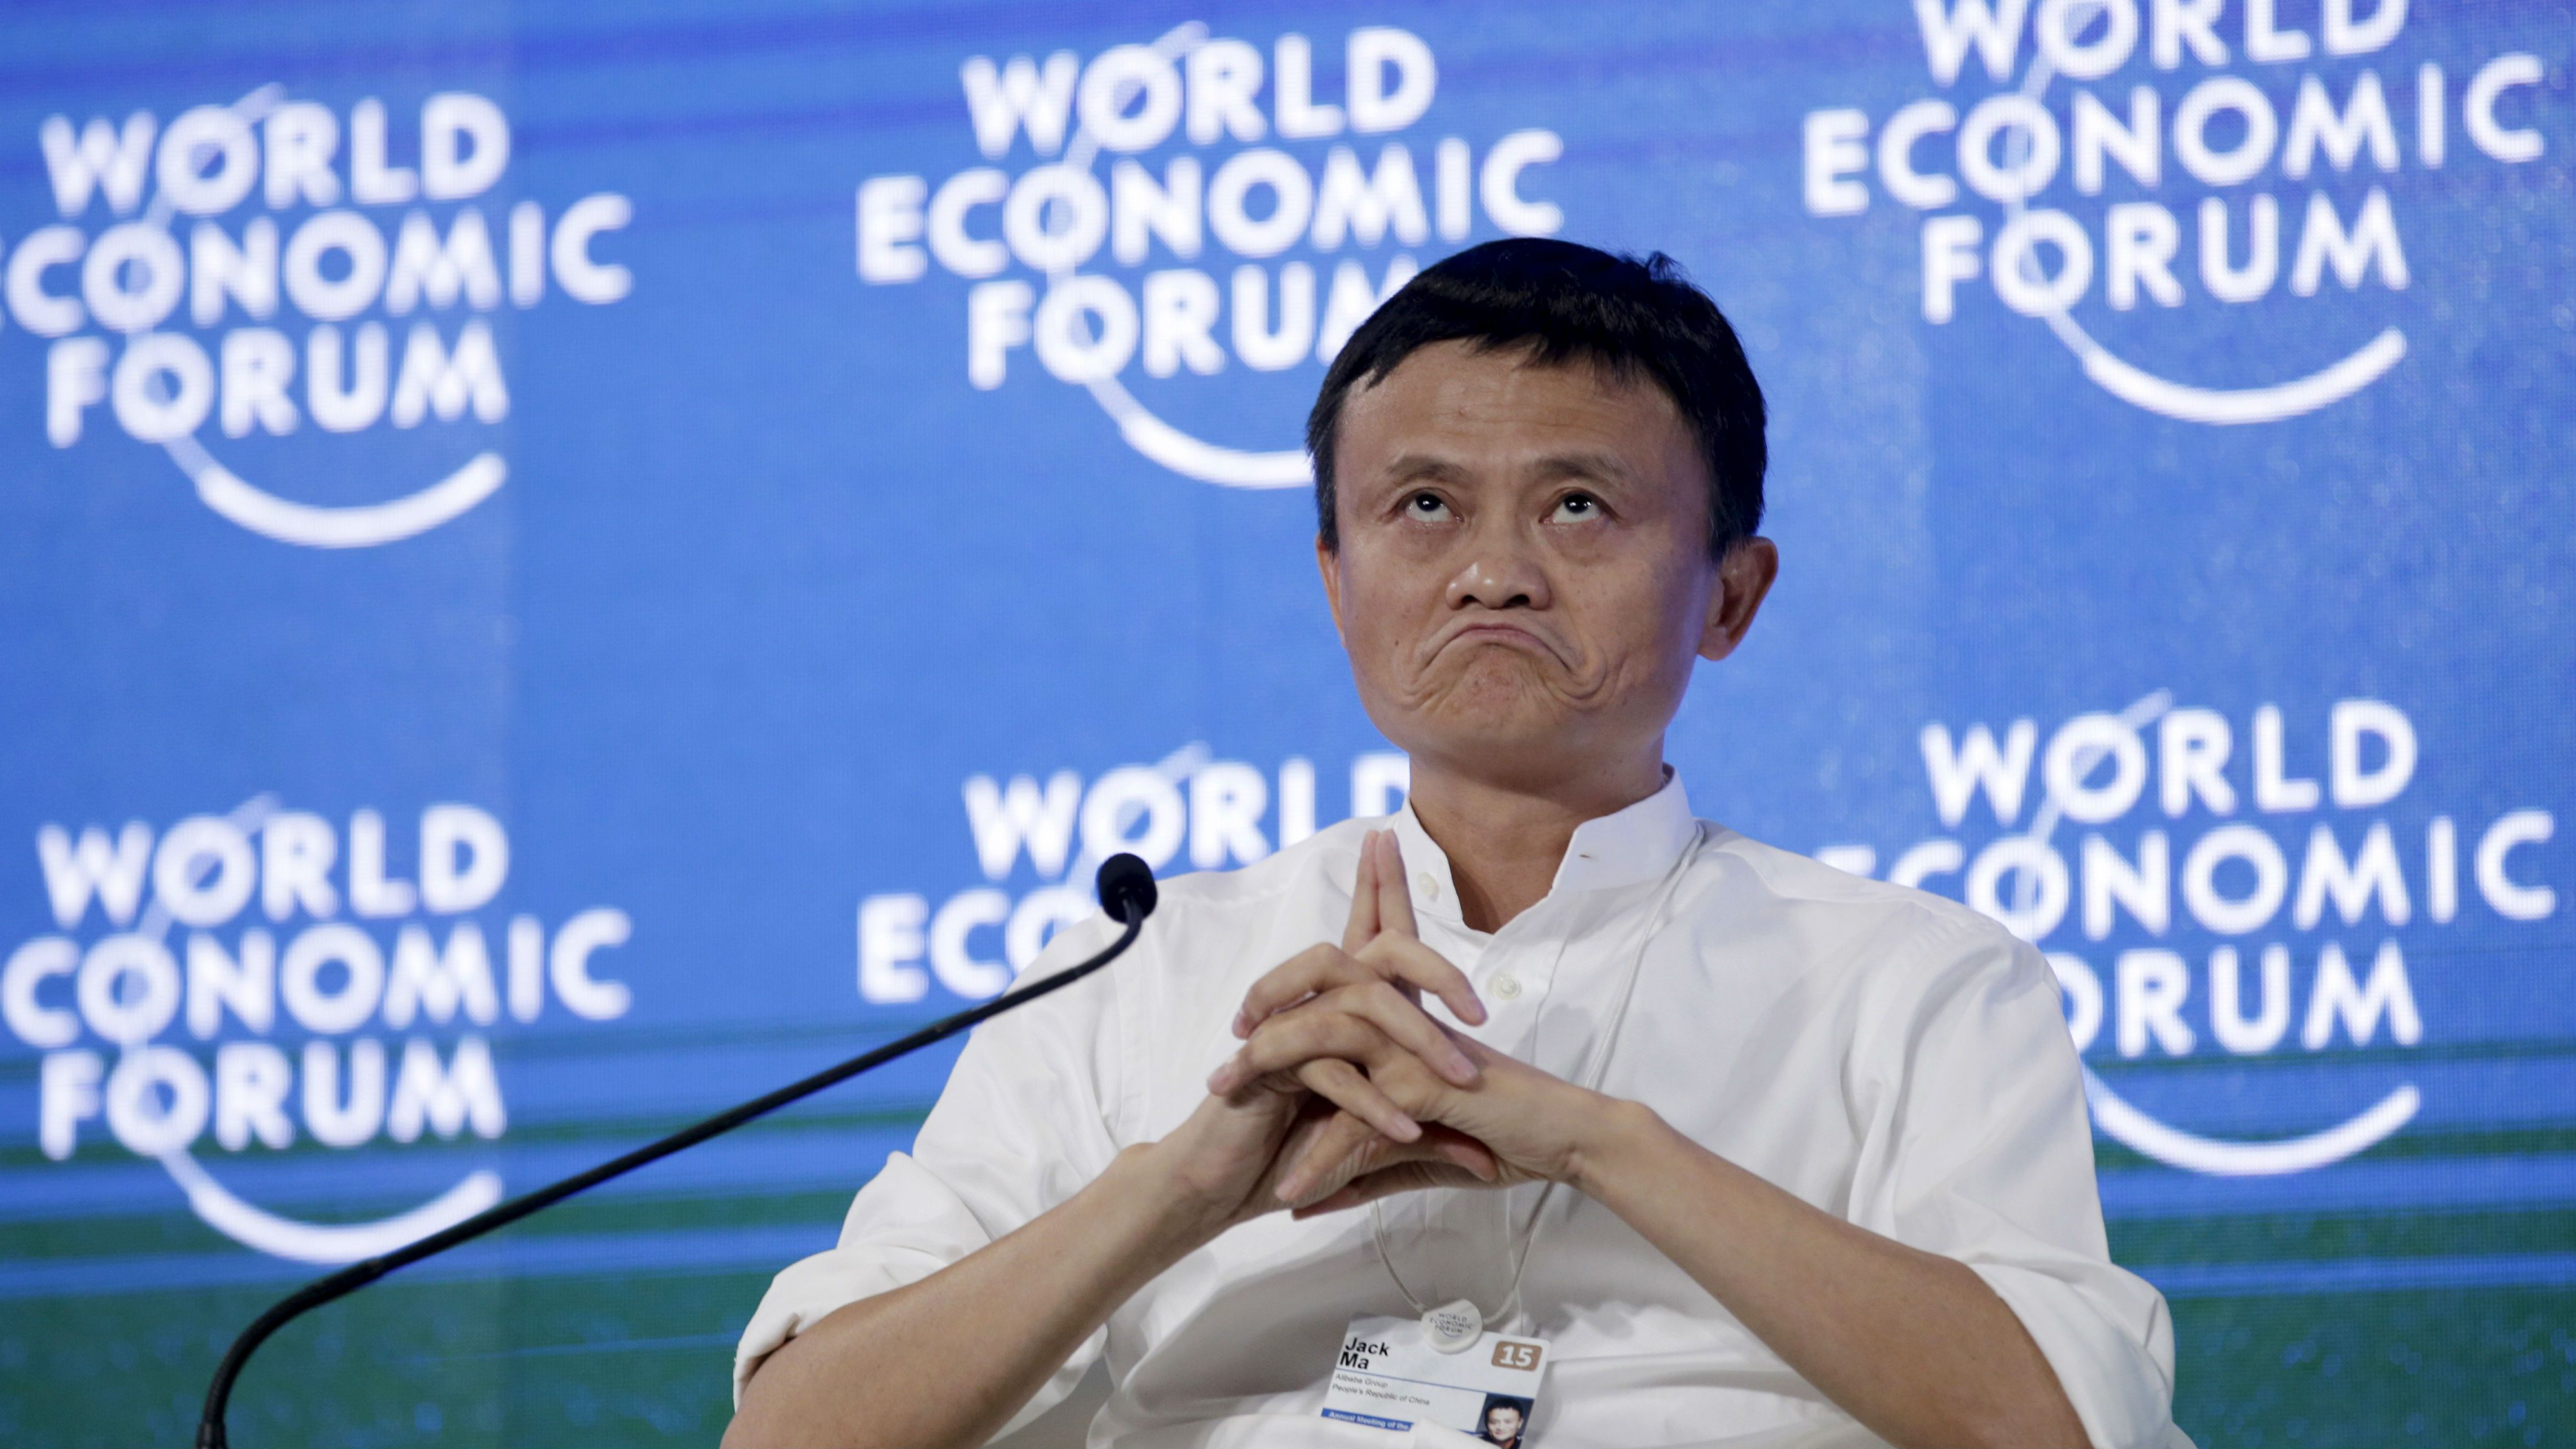 """Chairman and chief executive of Alibaba Group, Jack Ma attends a session of """"Future-Proofing the Internet Economy"""" at the World Economic Forum (WEF) in China's port city Dalian, September 9, 2015. China's economy still faces relatively large downward pressure, the head of the country's top economic planner said on Wednesday. """"The largest problem facing the Chinese economy now is industrial overcapacity,"""" Xu Shaoshi, chairman of the National Development and Reform Commission (NDRC), said at the World Economic Forum (WEF), the Swiss-based corporate think tank which runs the Davos summit of world leaders. REUTERS/Jason Lee TPX IMAGES OF THE DAY"""